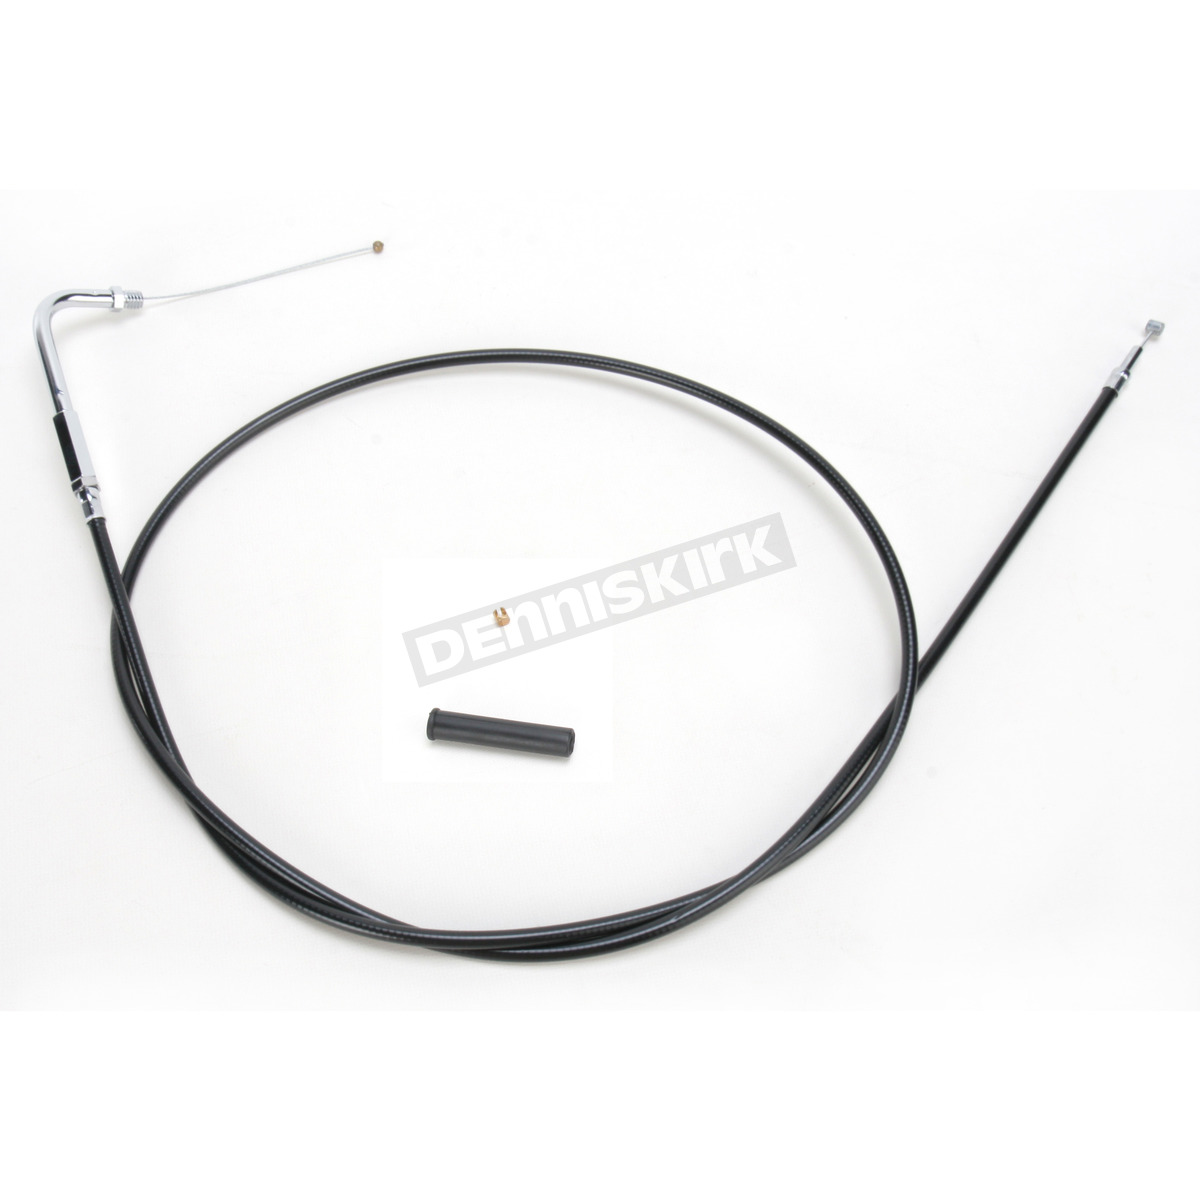 Drag Specialties Black Vinyl Throttle Cable W 90 Degree Elbow